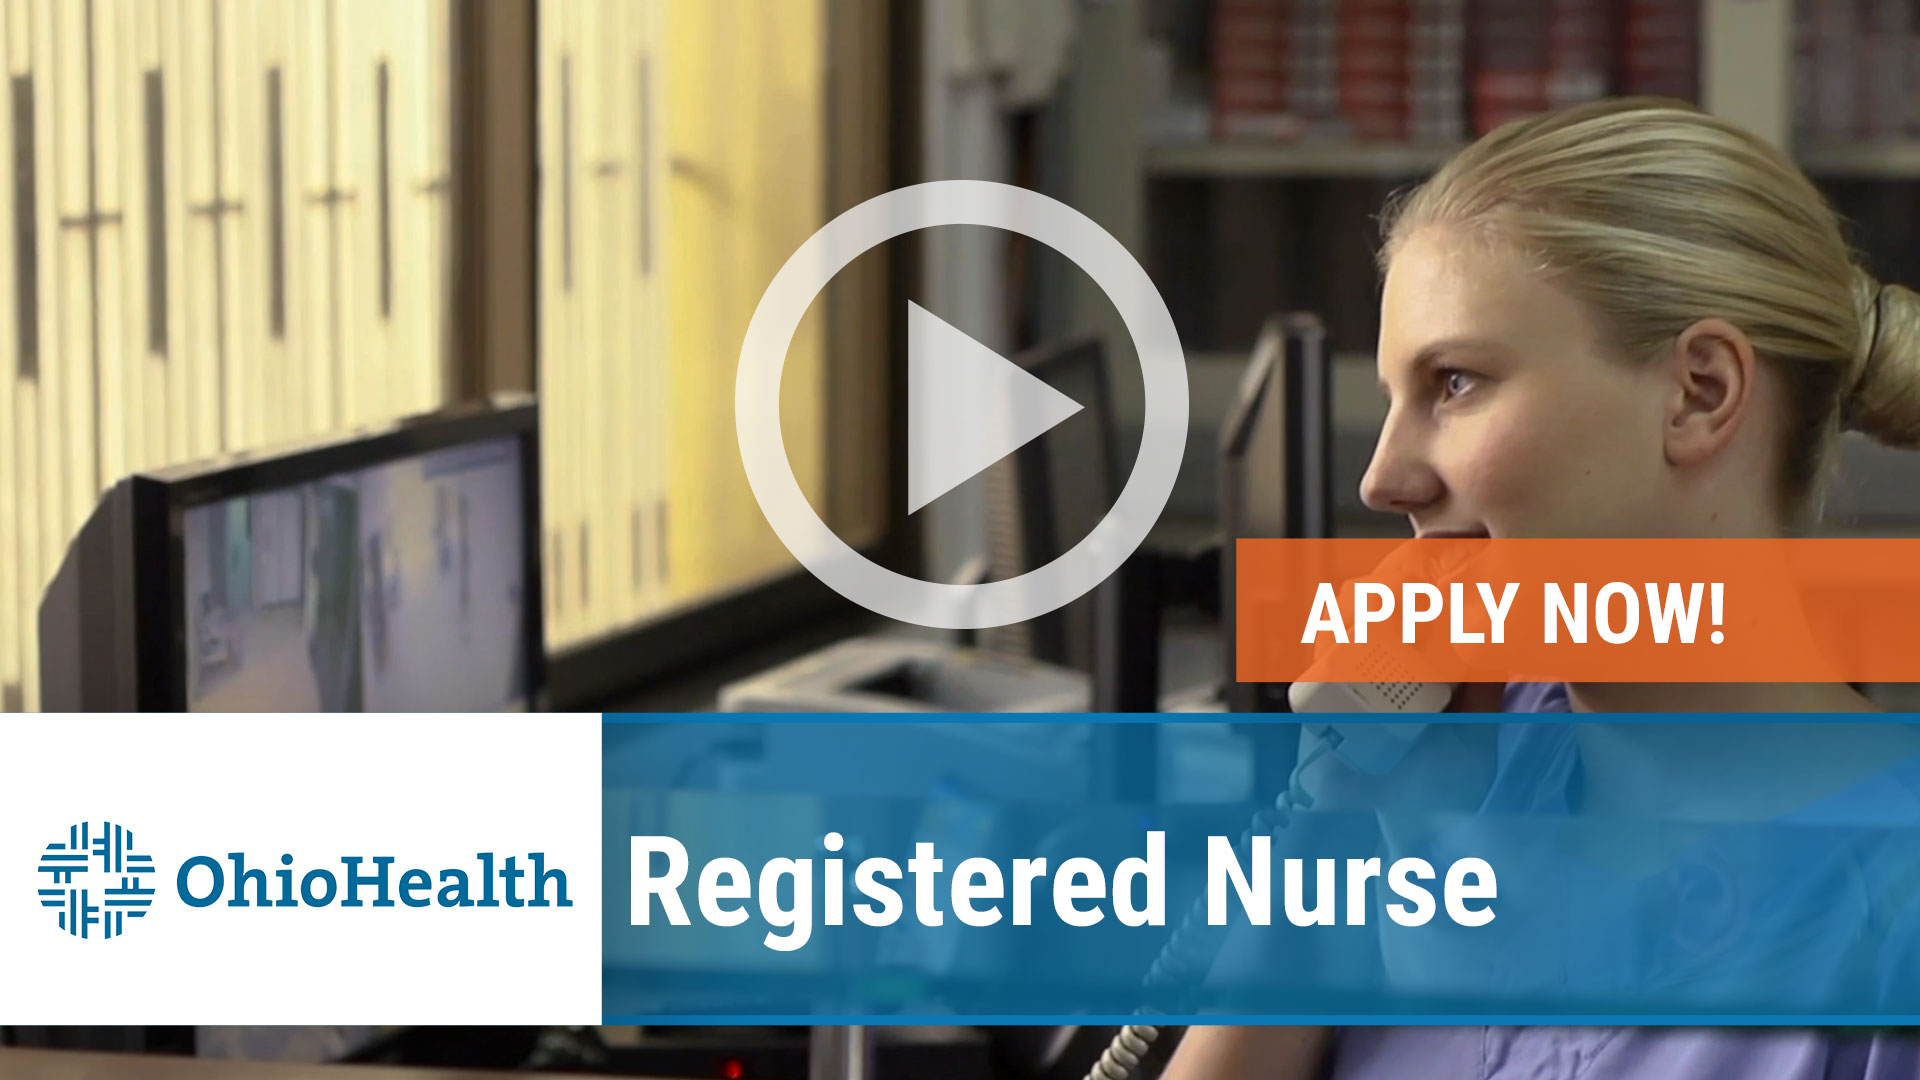 Watch our careers video for available job opening Registered Nurse in Mansfield, Ohio